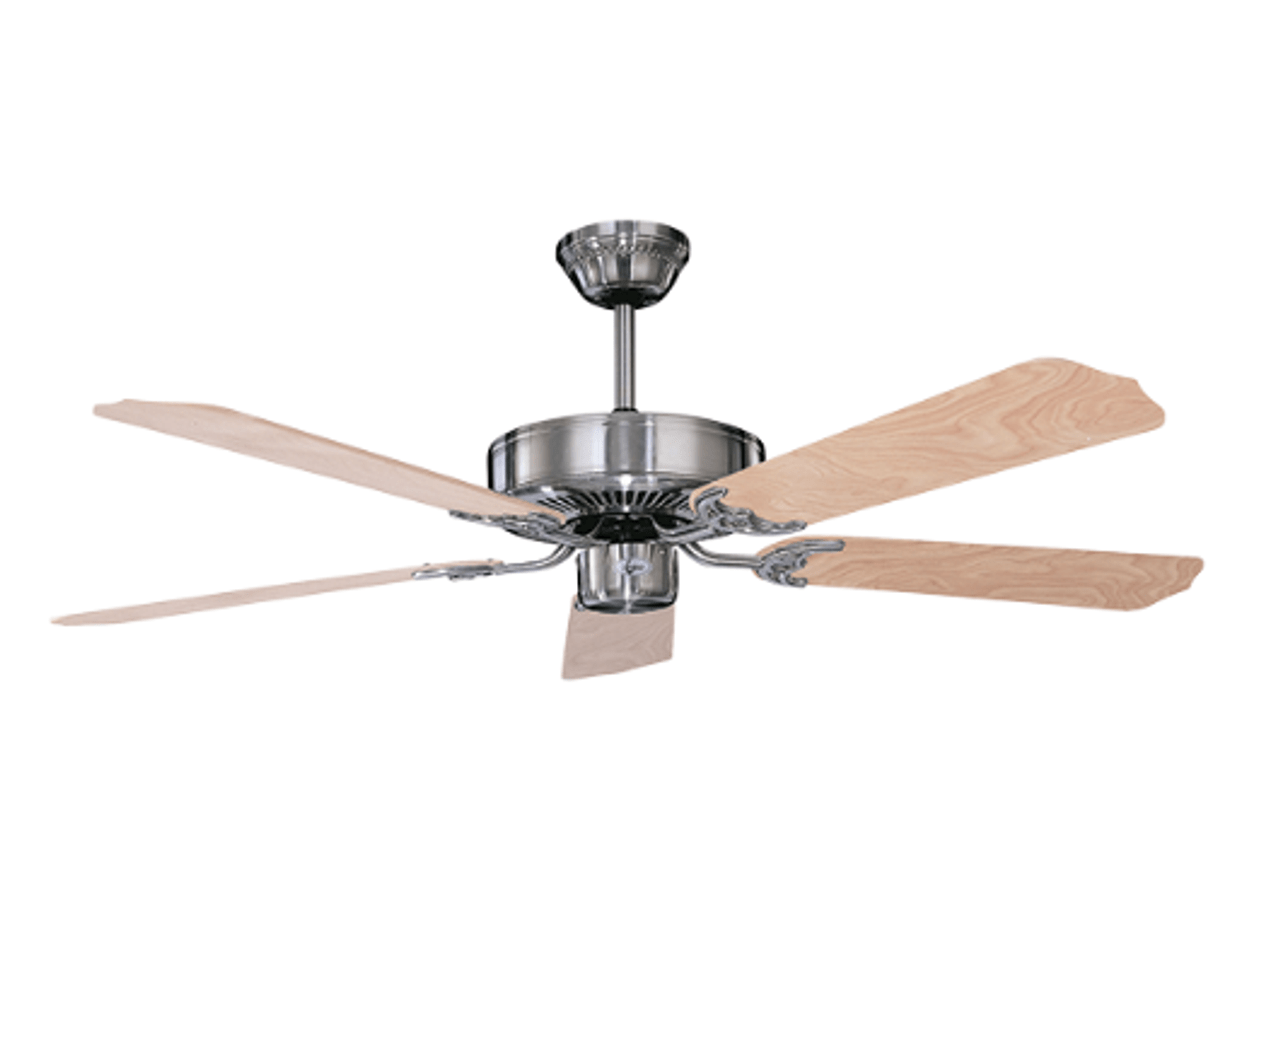 Sunset Cf52242 50 52 5 Natural Pine Blades Stainless Steel California Home Dual Mount Ceiling Fan